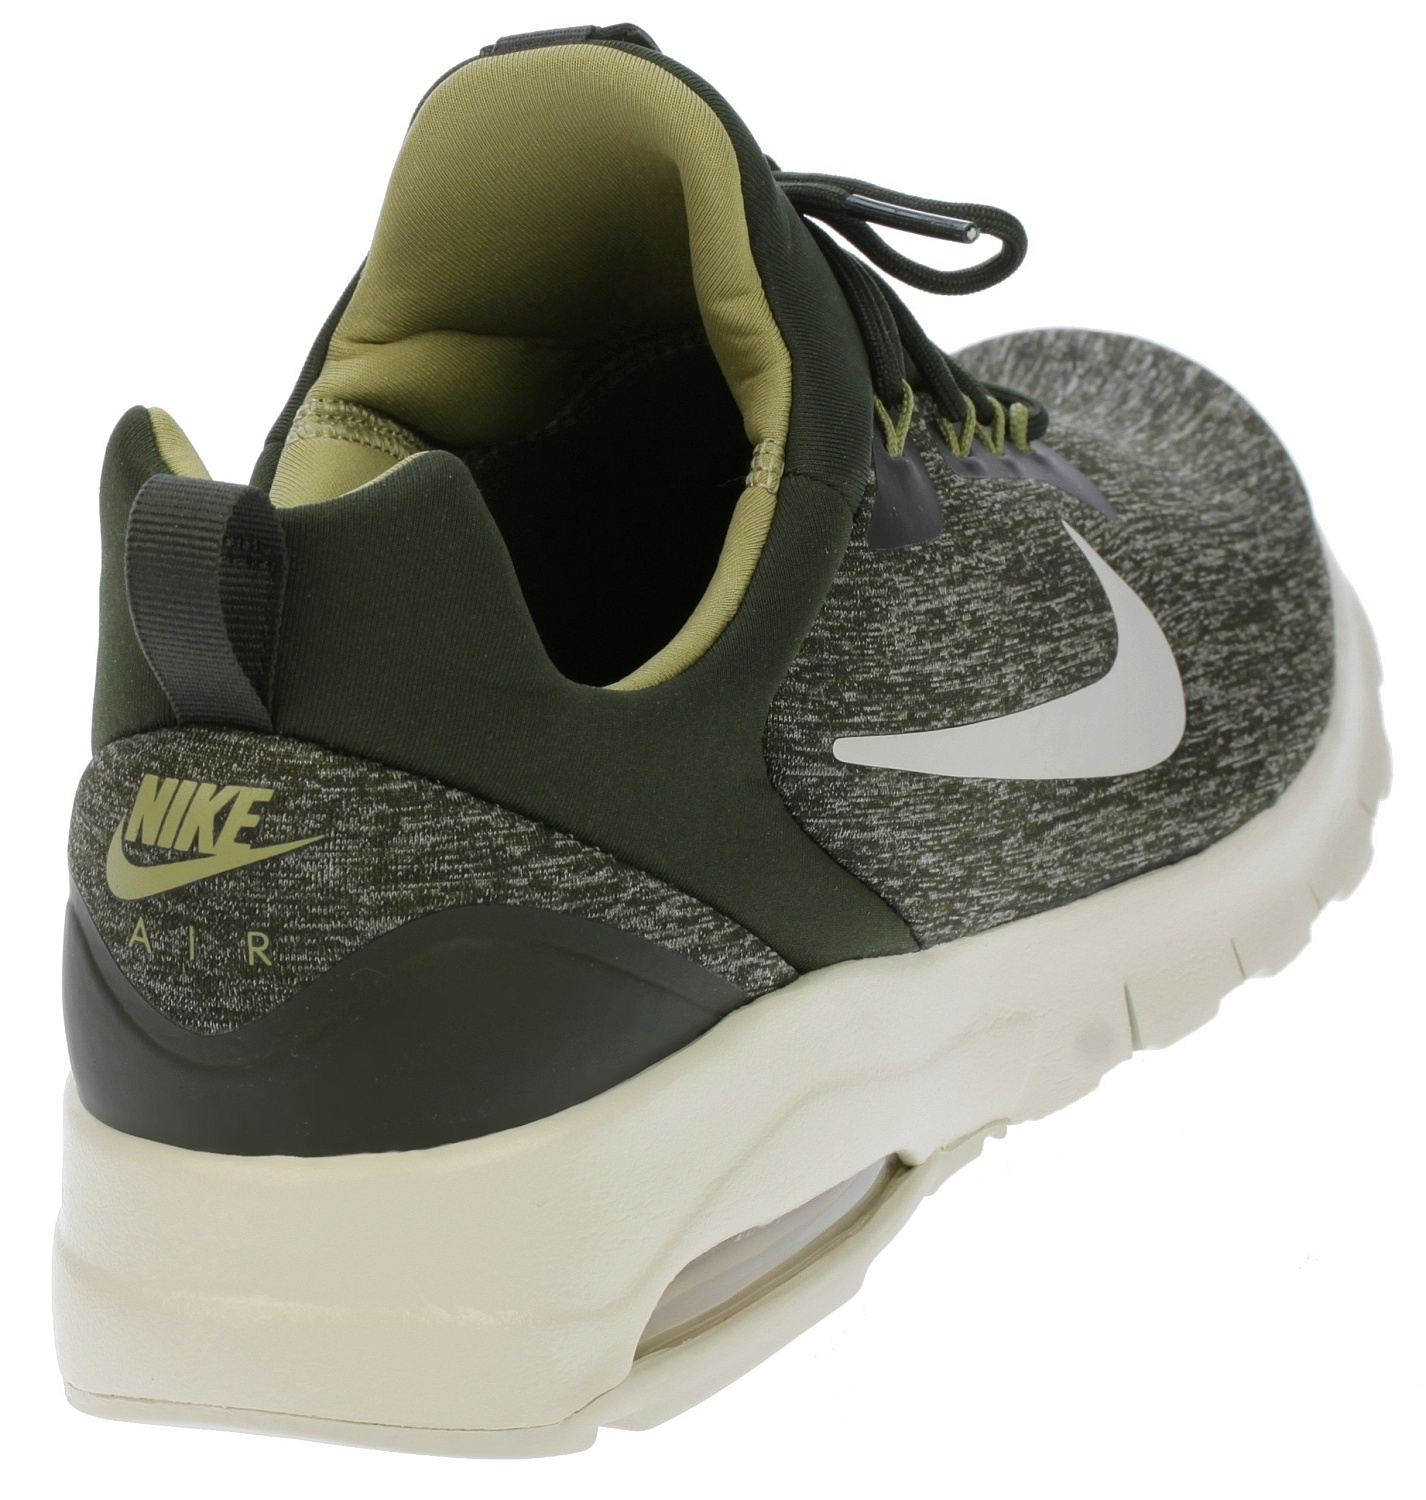 59c49ecfce3 ... coupon code for shoes nike air max motion racer sequoia light bone  neutral olive aee6f fc98a